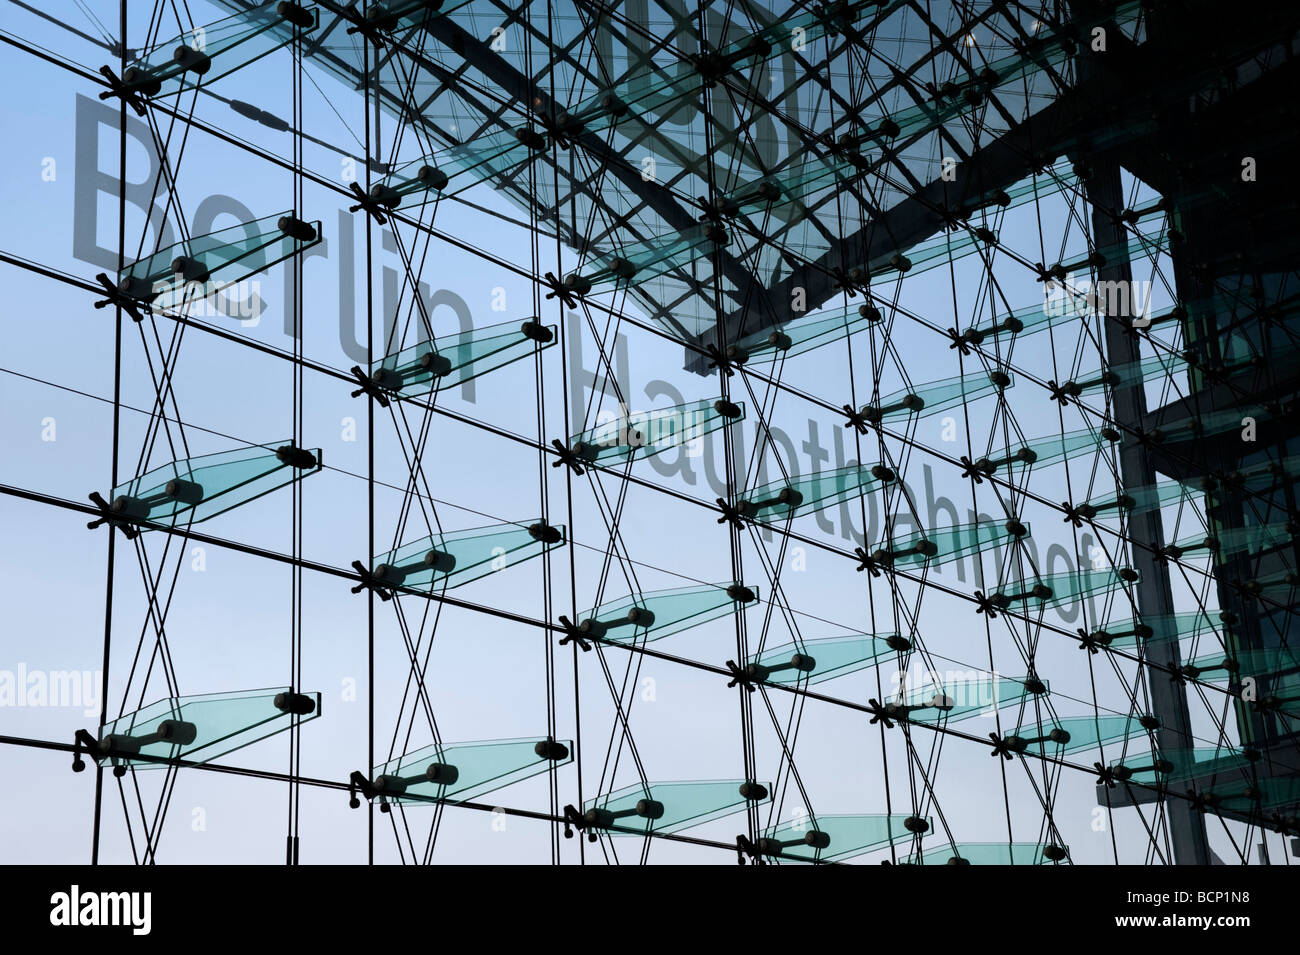 Glass curtain wall - Detail Of Glass Curtain Wall At Berlin Hauptbahnhof Or Central Railway Station Stock Image